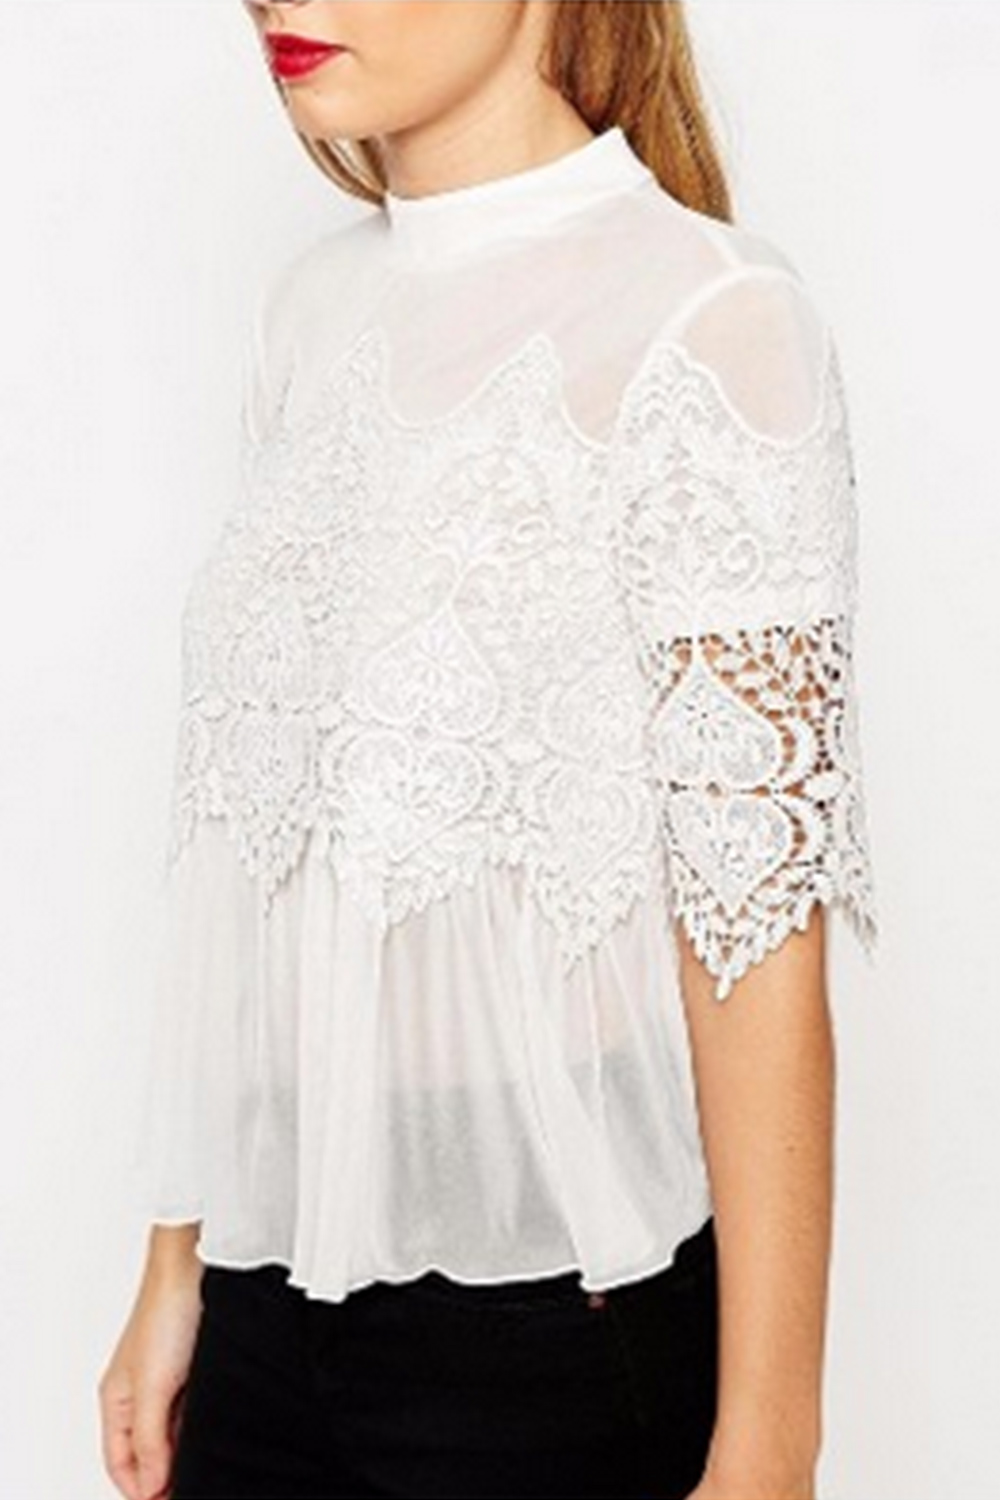 fe060f6b91bf3d UNOMATCH WOMEN DESIGNING BUST LOOSE LACE SHIRT AND BLOUSE WHITE ...